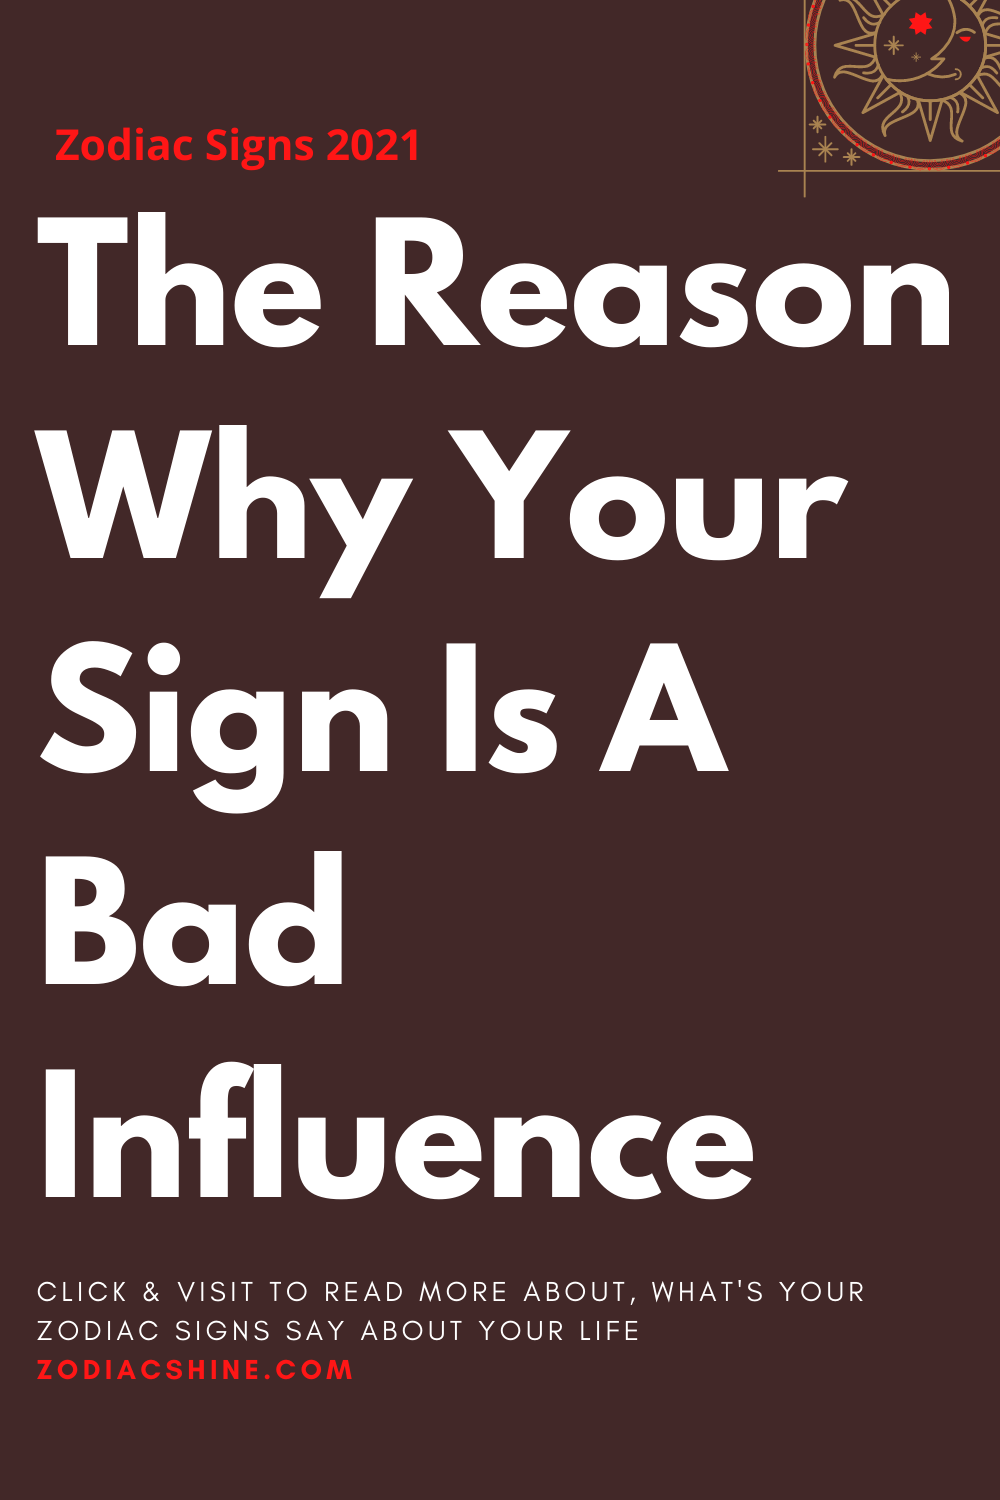 The Reason Why Your Sign Is A Bad Influence